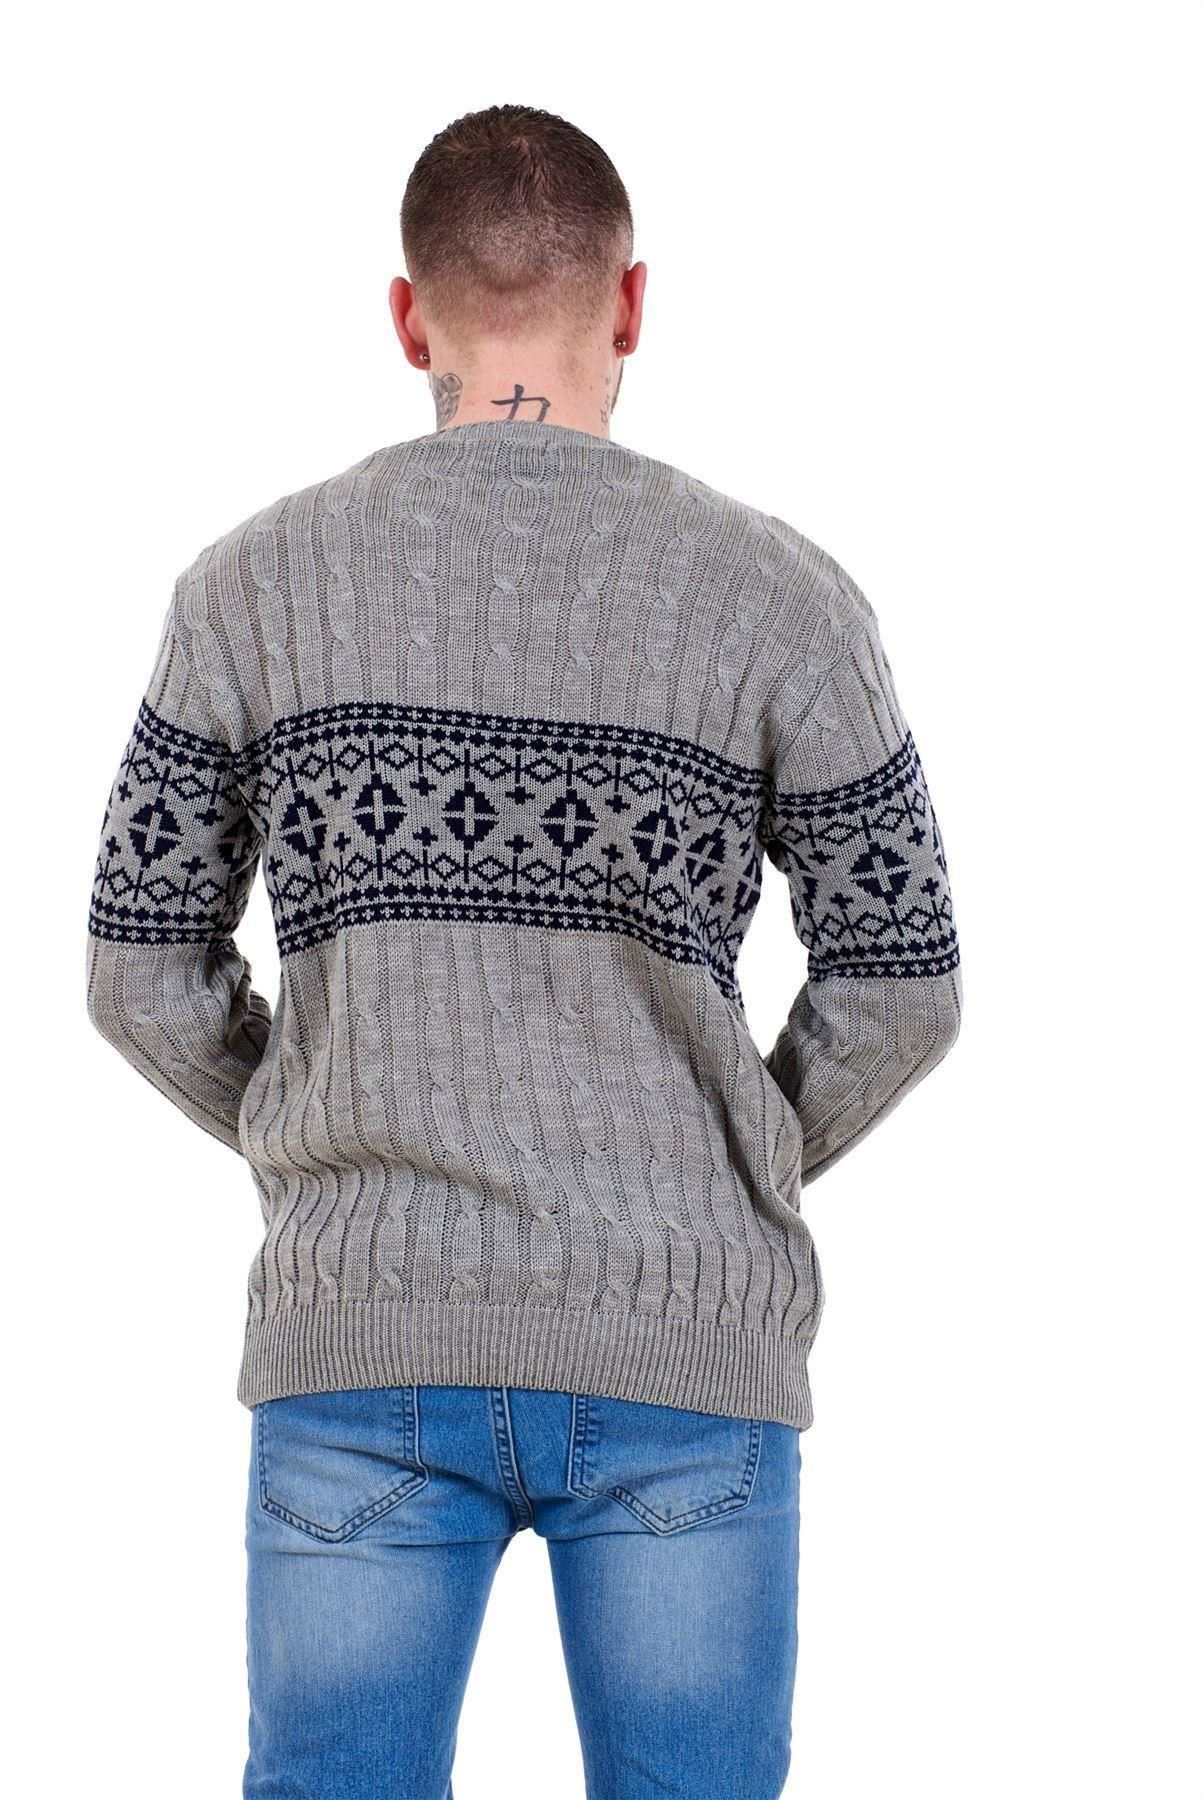 Mens-New-Cable-Knit-Jacquard-Long-Sleeve-Pullover-Jumper-Sweater-S-to-XL thumbnail 11